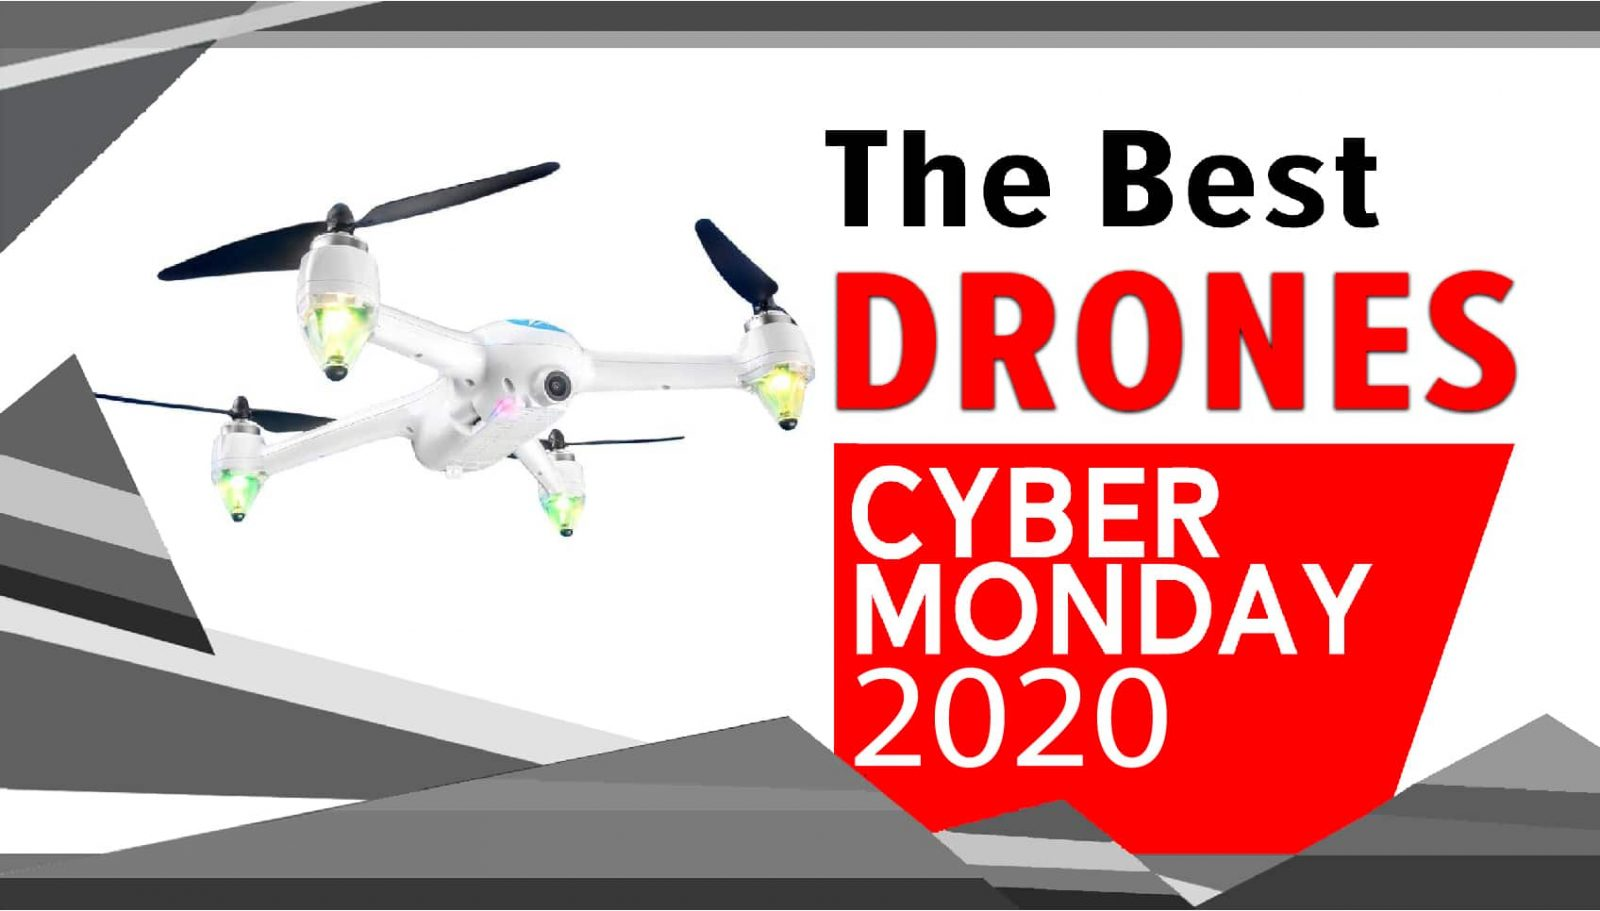 drones for monday 2021